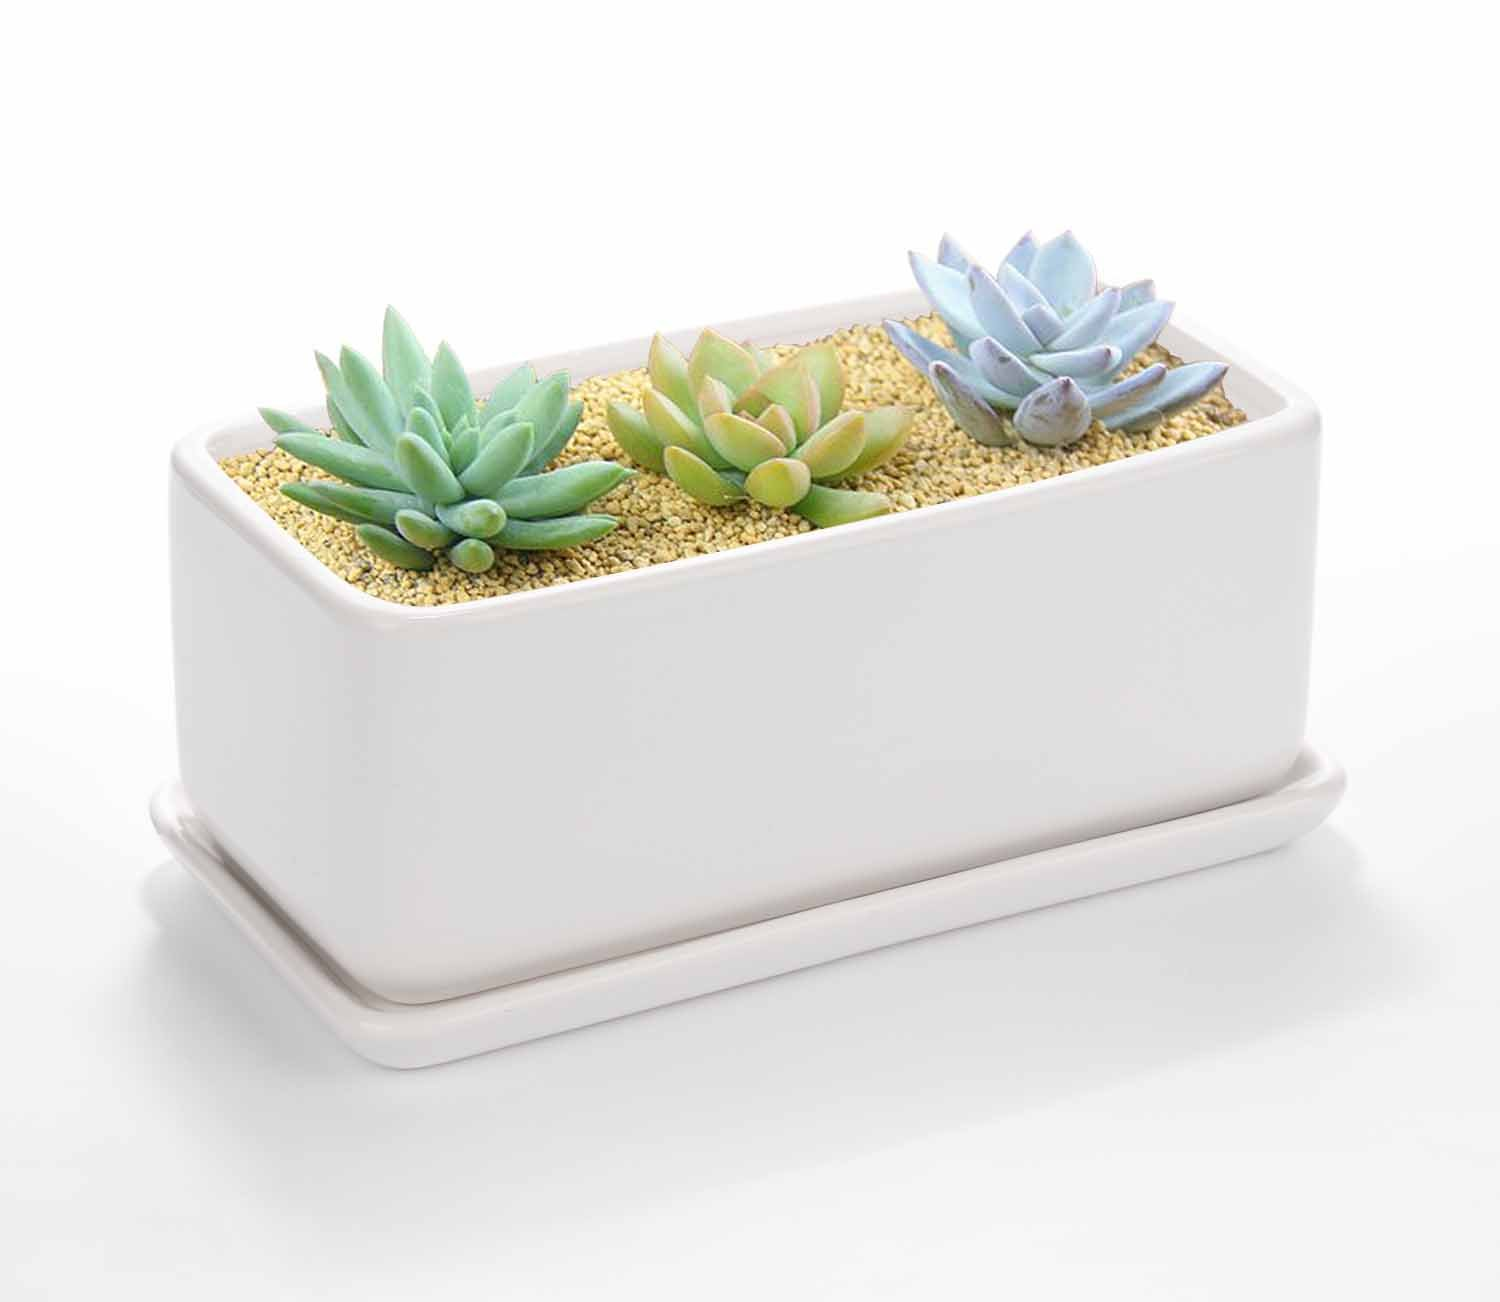 Vencer 10 Inch Rectangular Modern Minimalist Ceramic Succulent Planter Pot - Window Box with Saucer,Office Desktop Potted Stand,White,VF-001W by Vencer